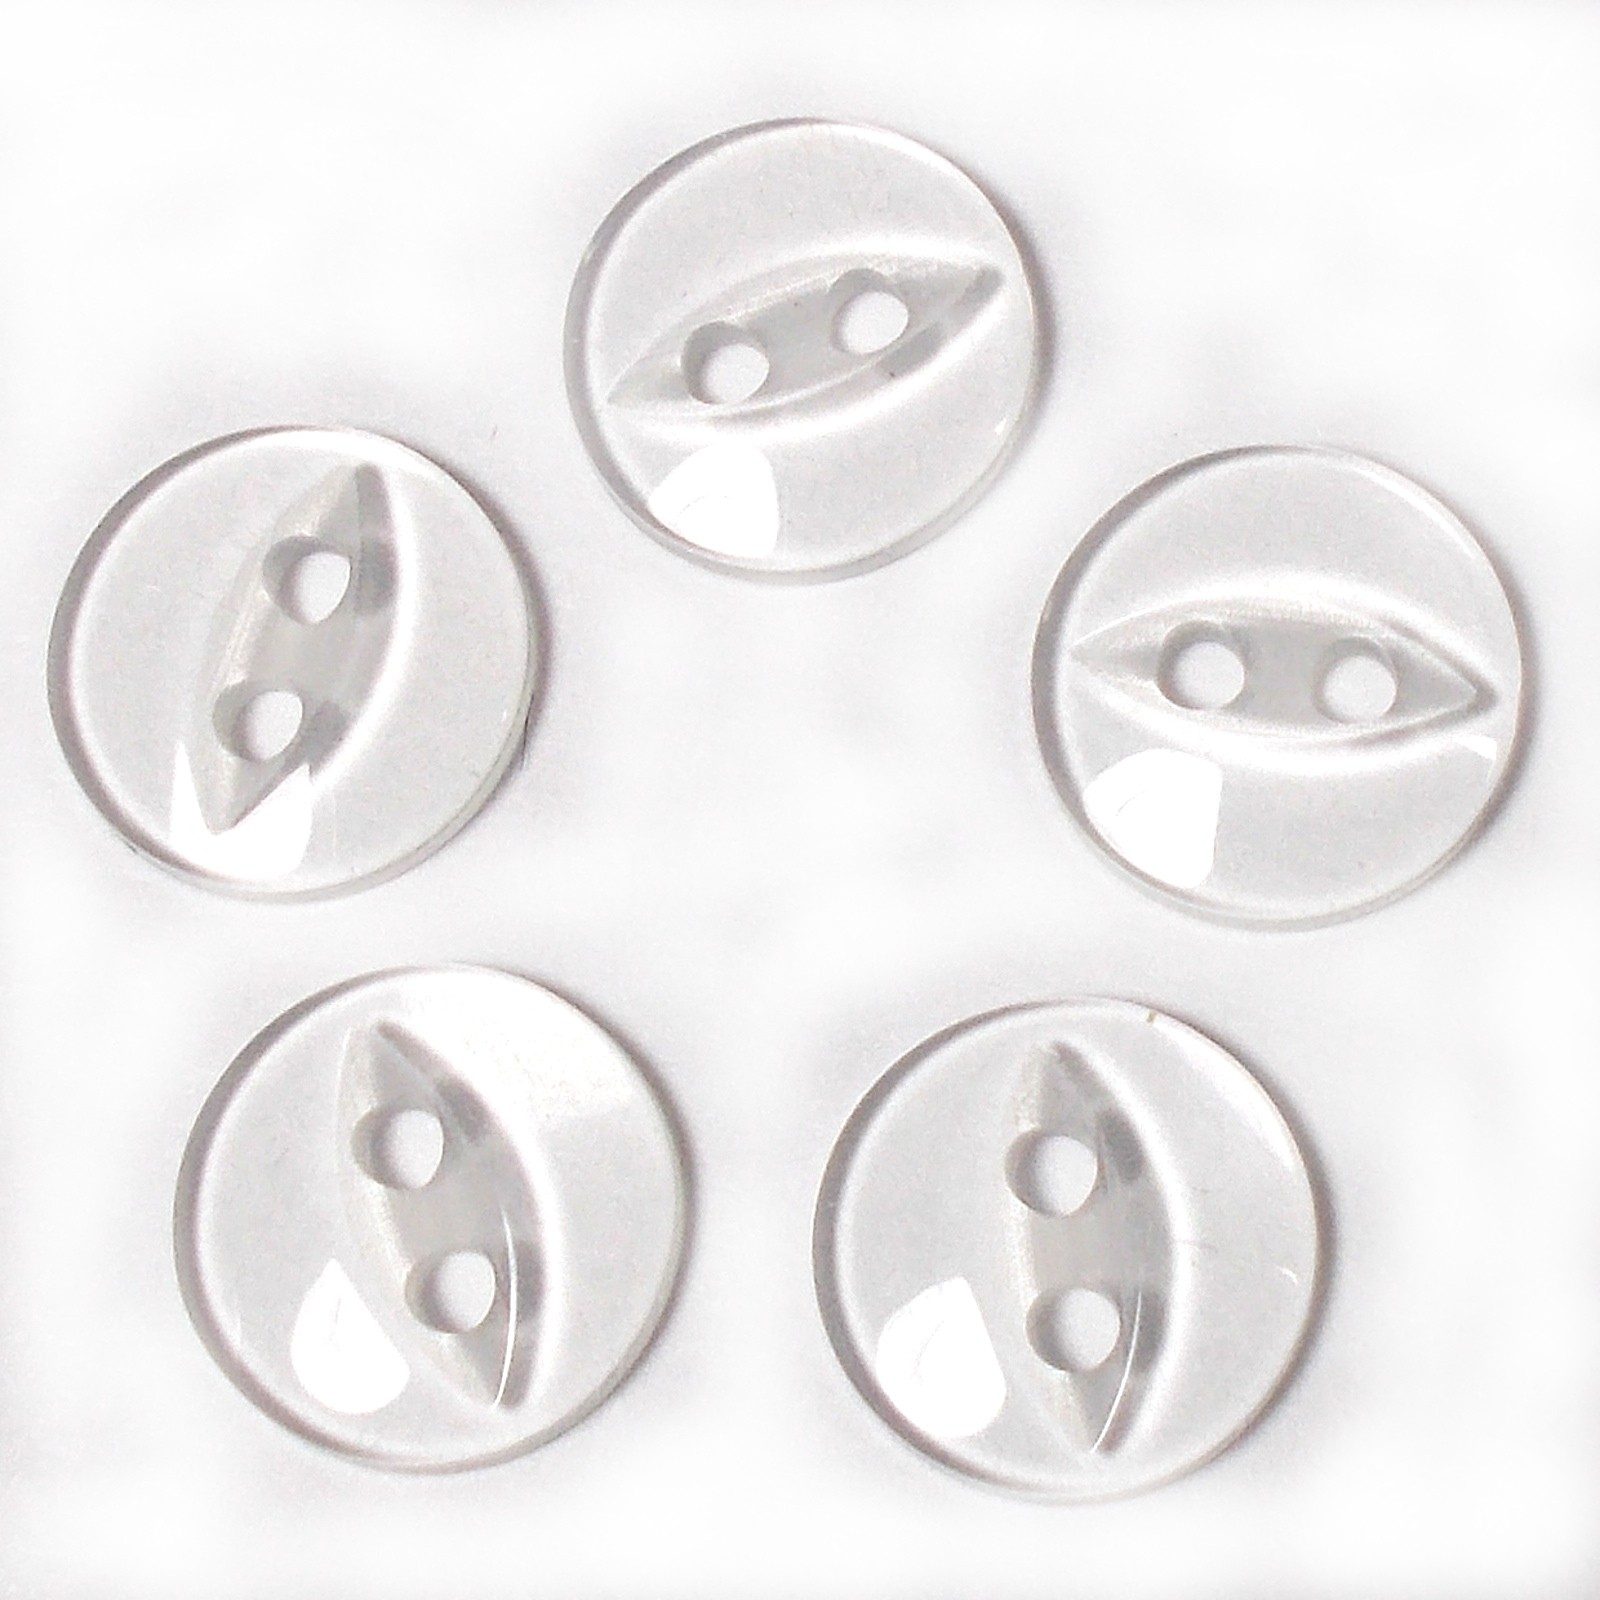 Fisheye Basic Buttons 16mm Clear Pack of 5